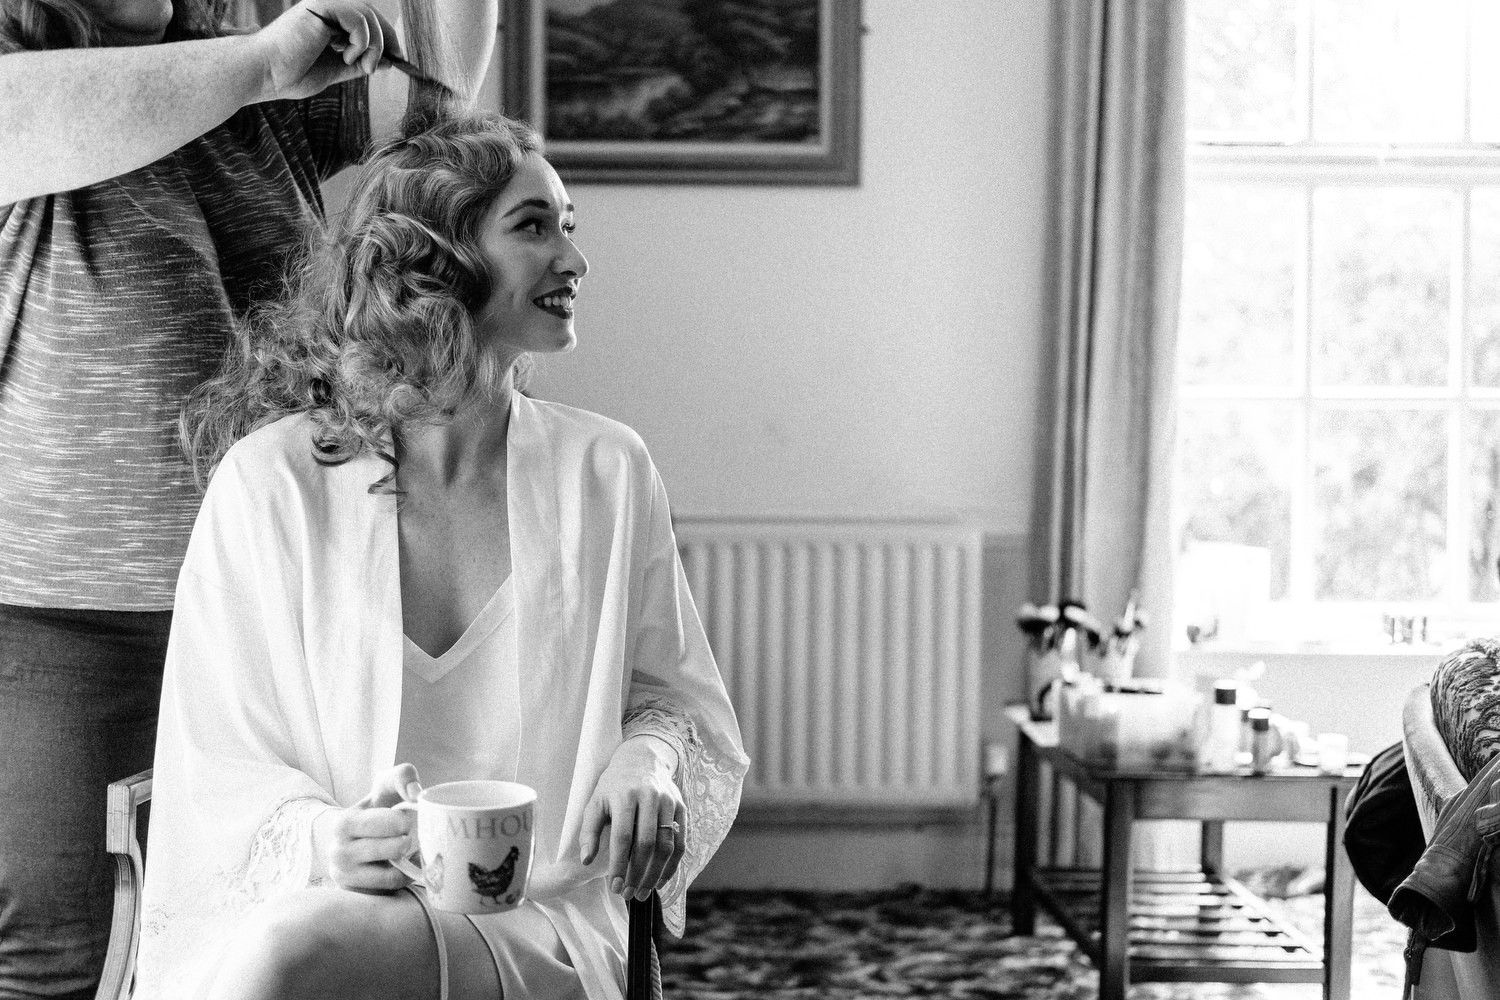 000000000000000000000056_bride_style_preparation_vintage_Hair_dress_photography_david_mcclelland_ireland_makeup_castle_hollywood_kinnity_wedding_photographer_fujifilm